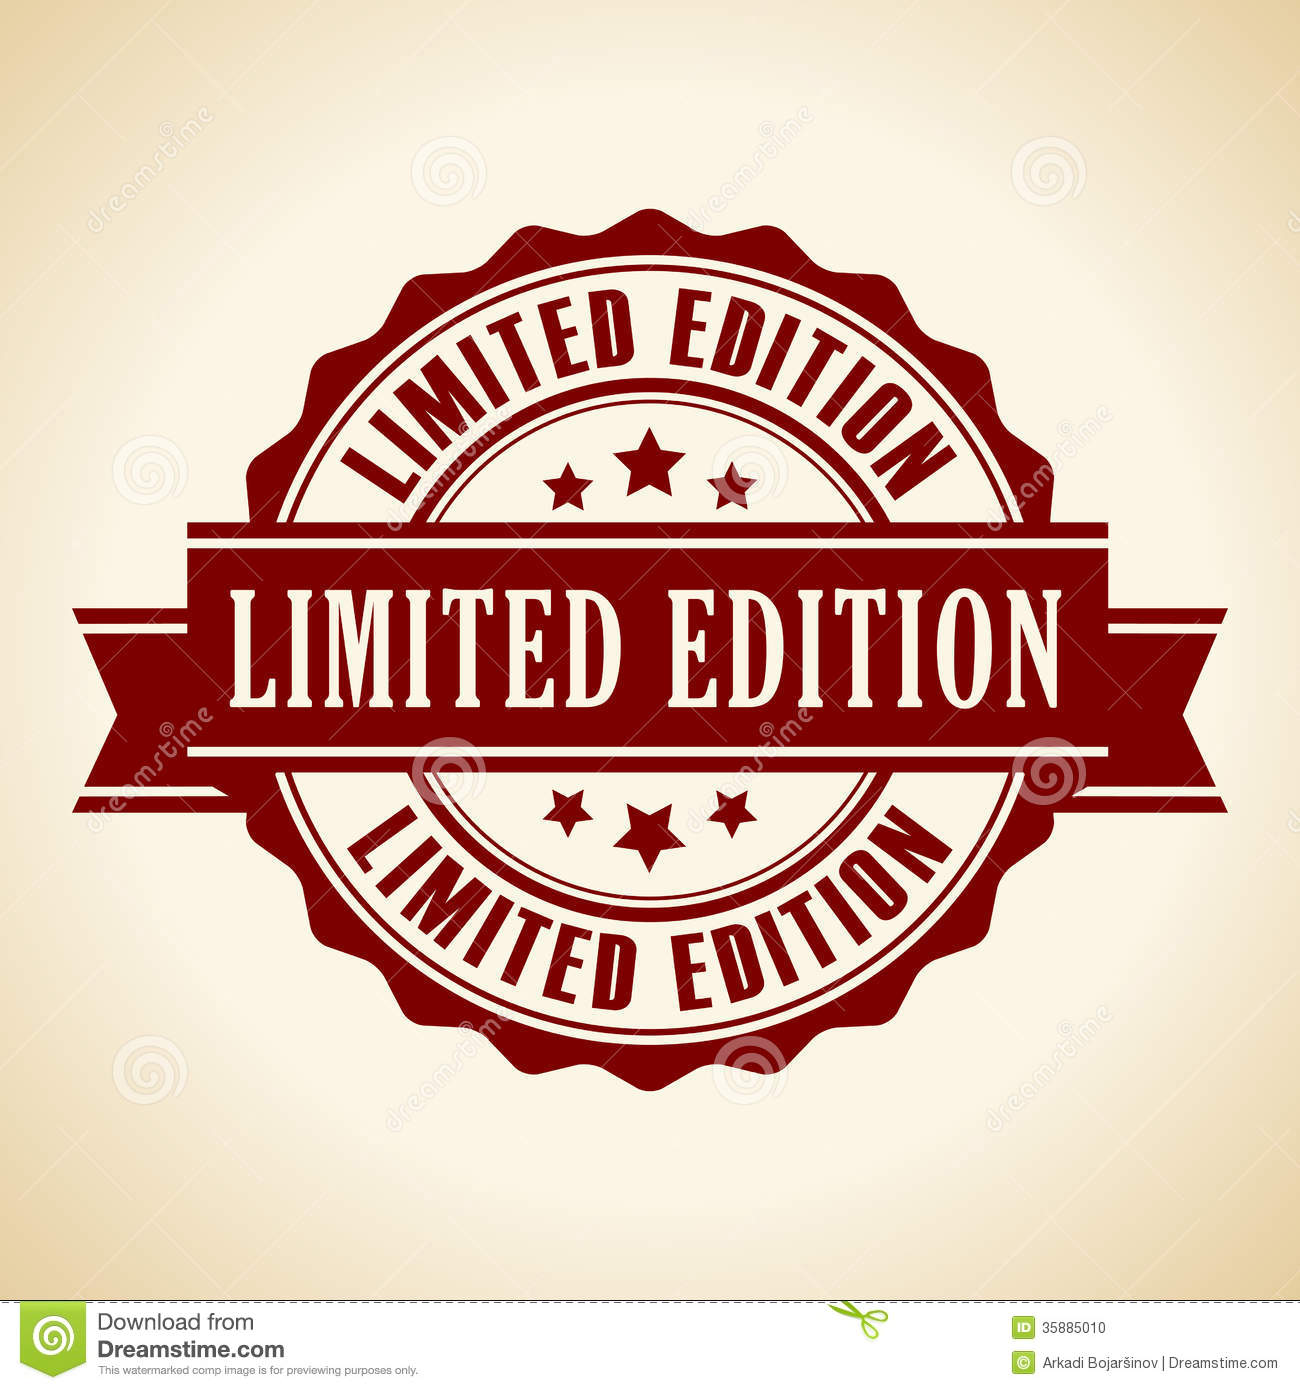 Limited edition icon stock vector. Illustration of poster ...